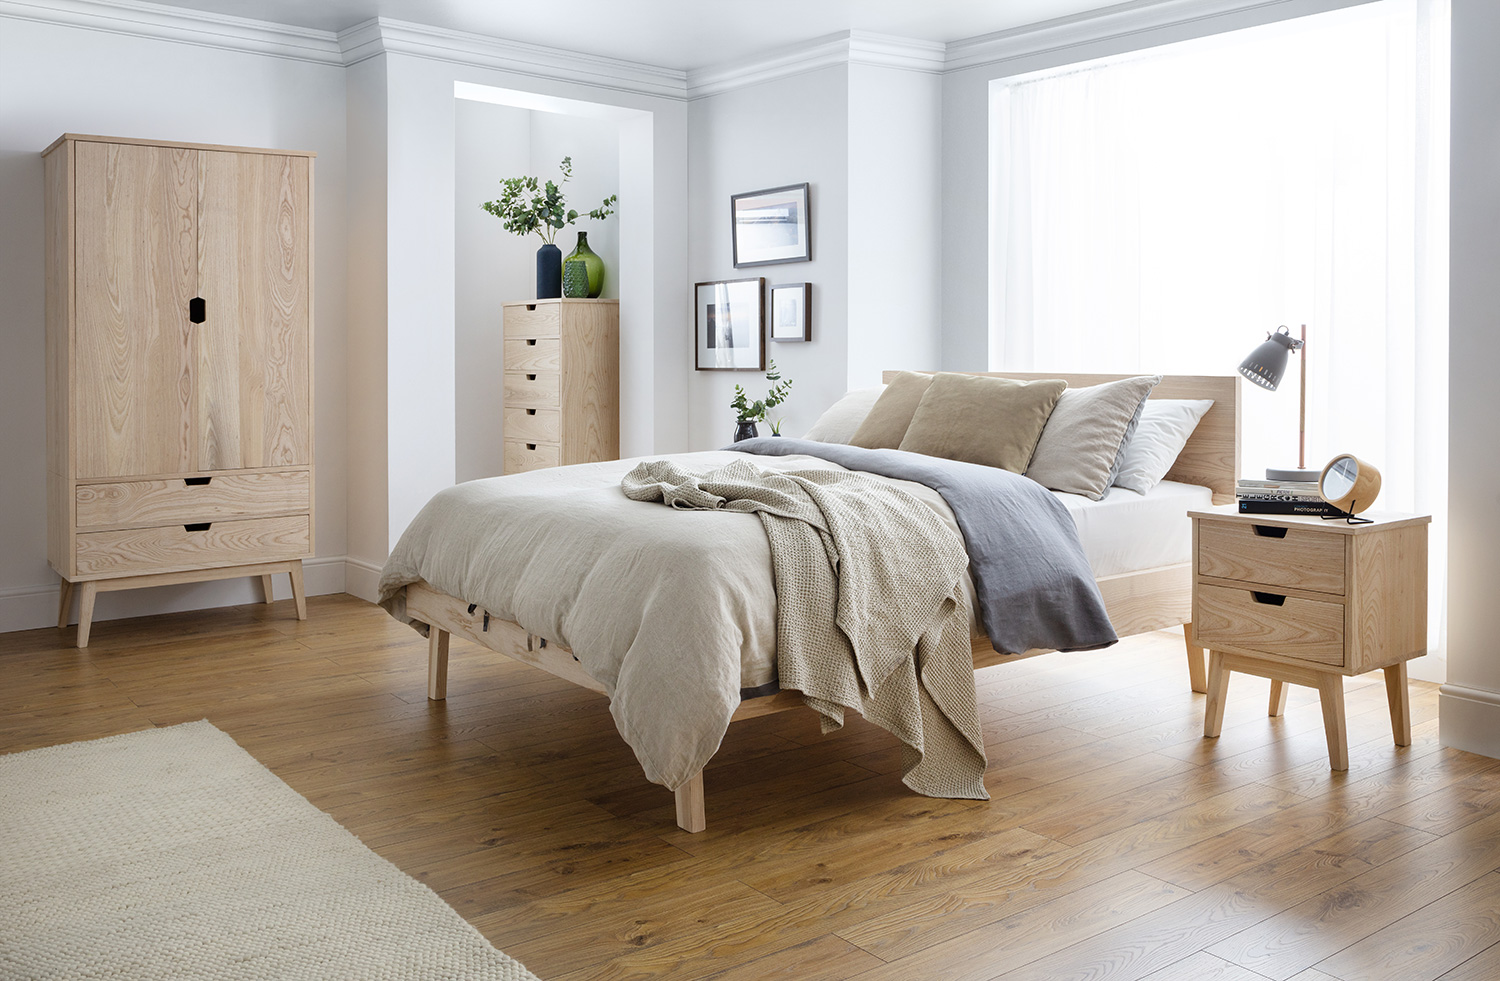 Indigo-Nordic-Set-Bedroom.jpg